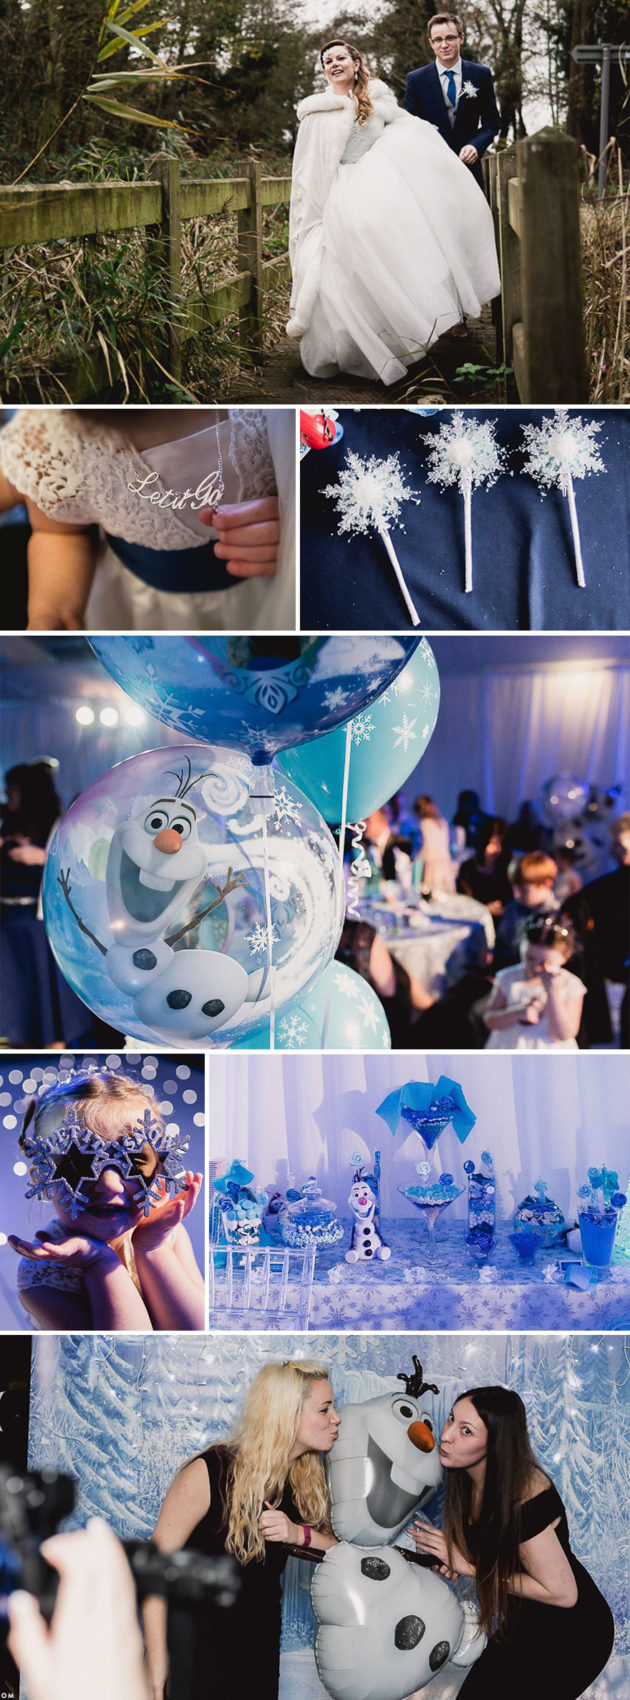 geeky-themed-wedding-23-57456eb2cdbbb__880